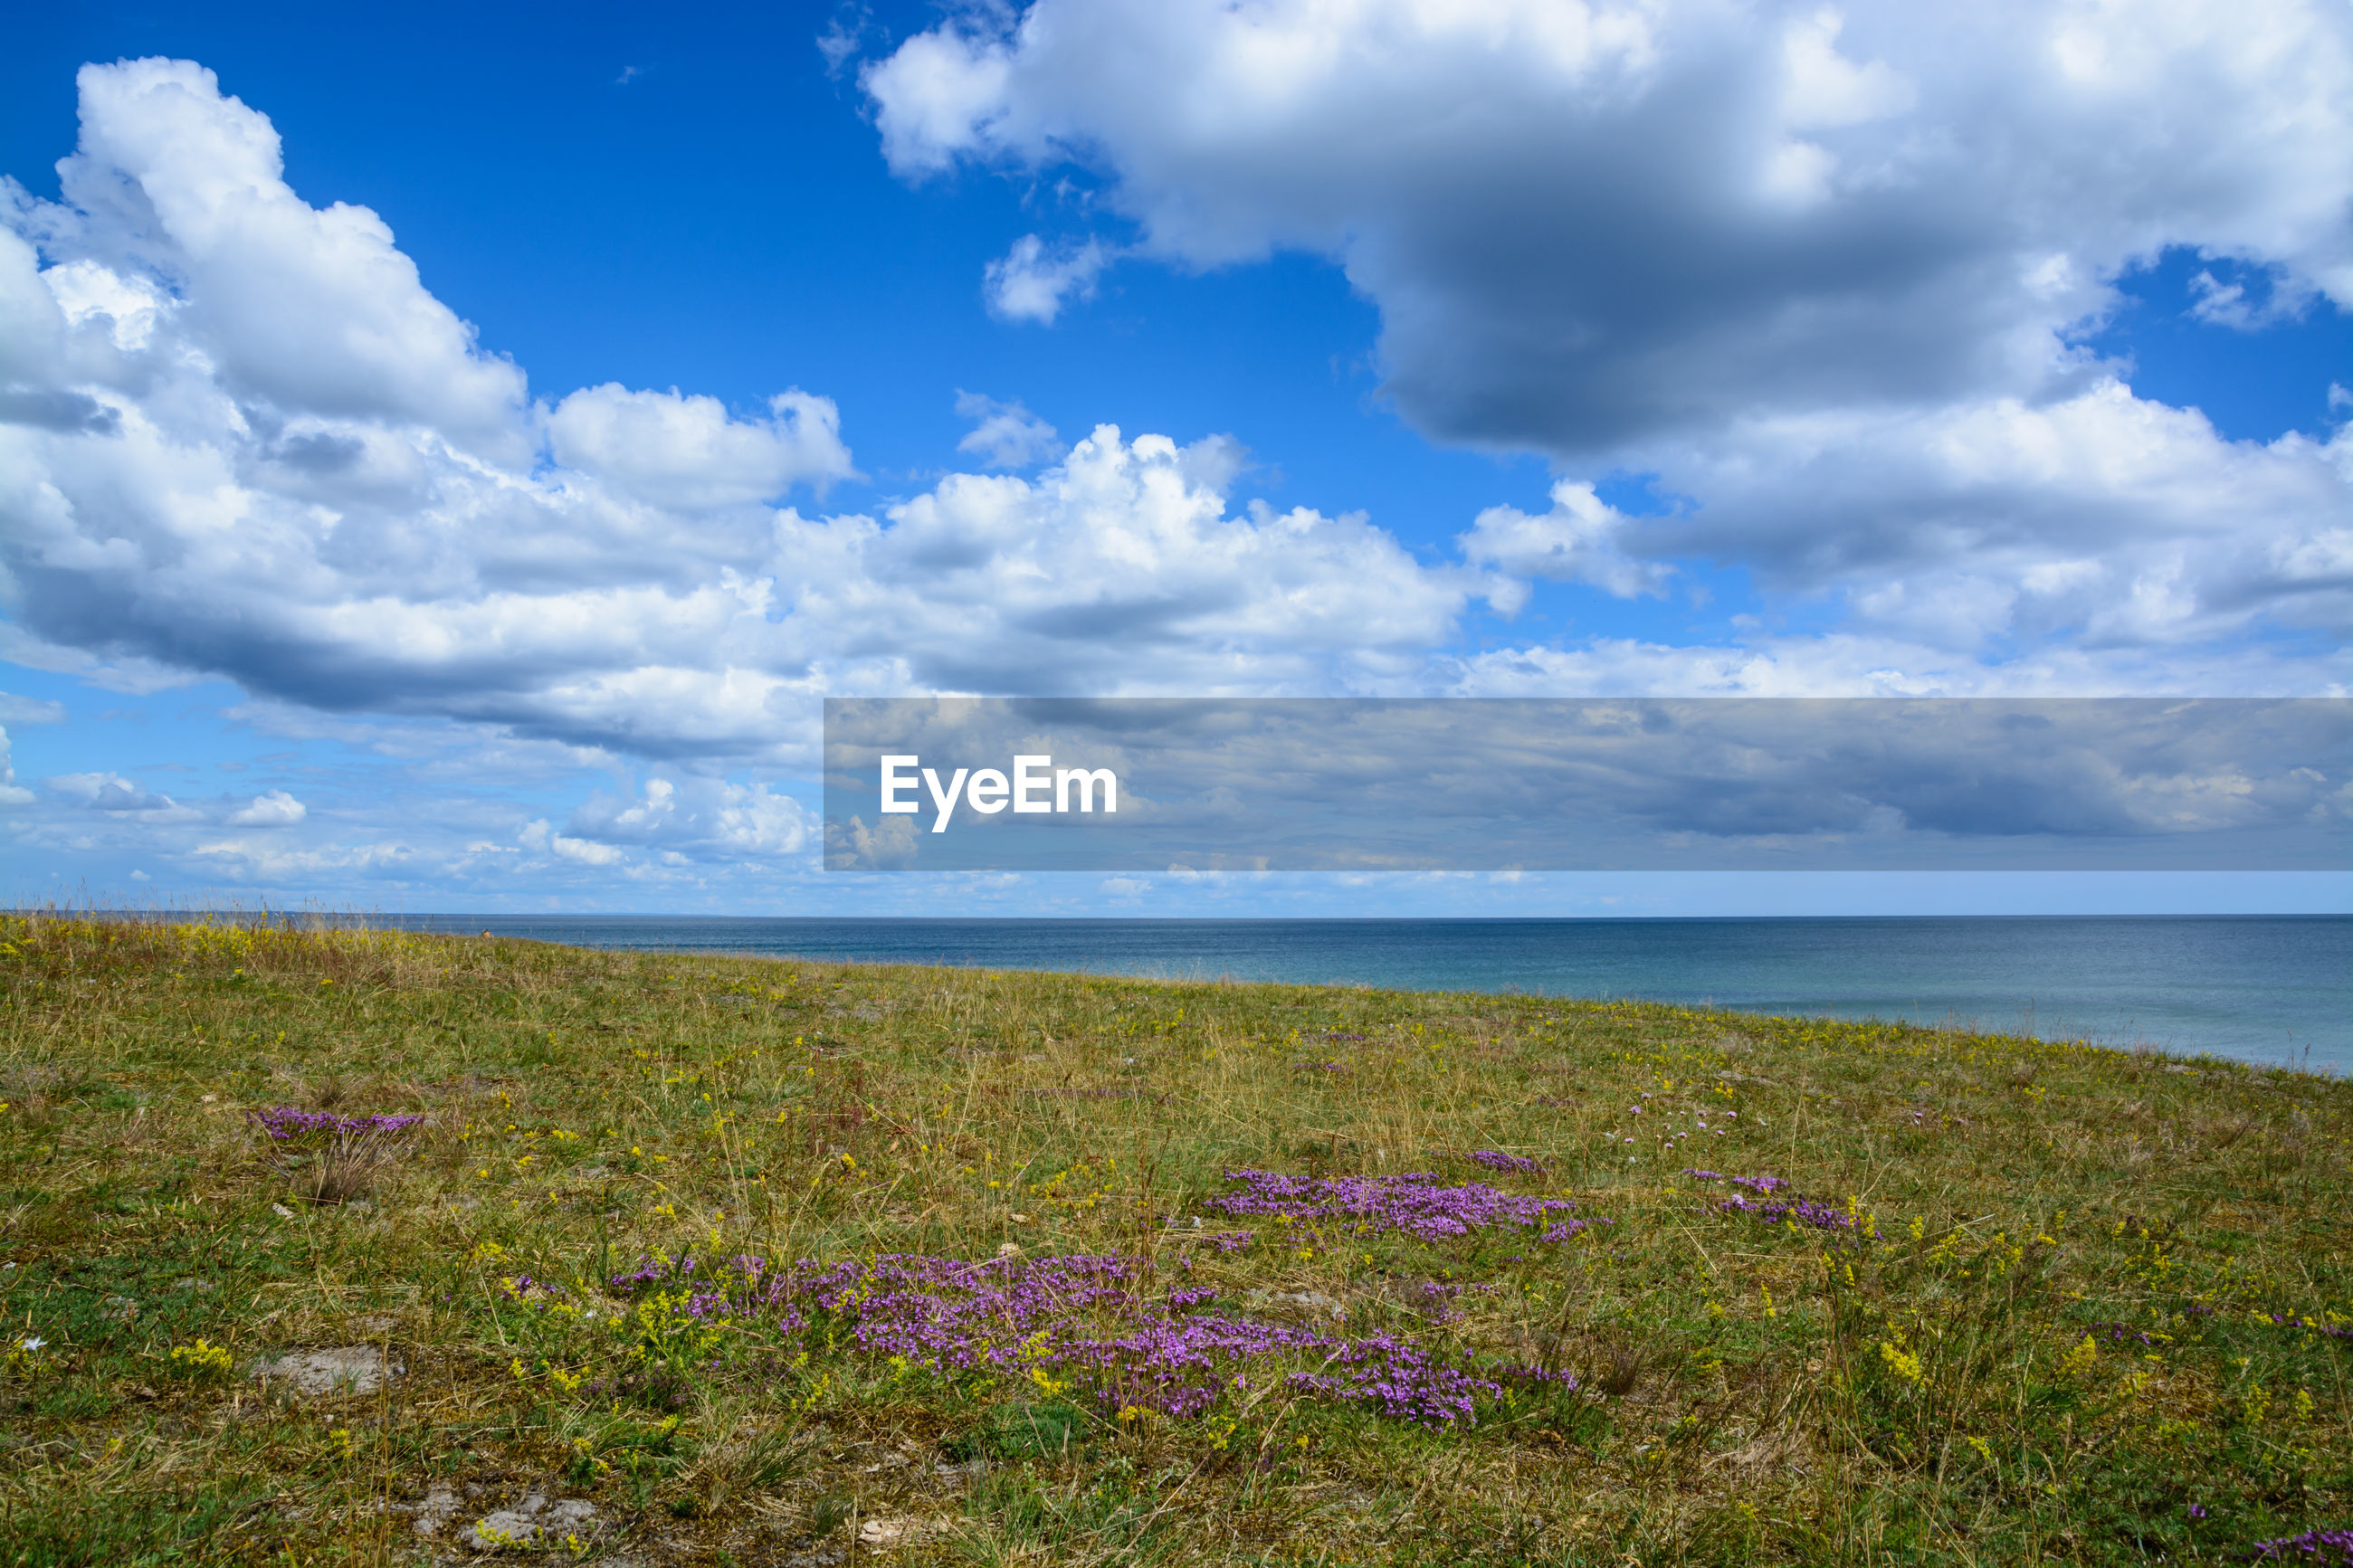 SCENIC VIEW OF SEA BY FIELD AGAINST SKY